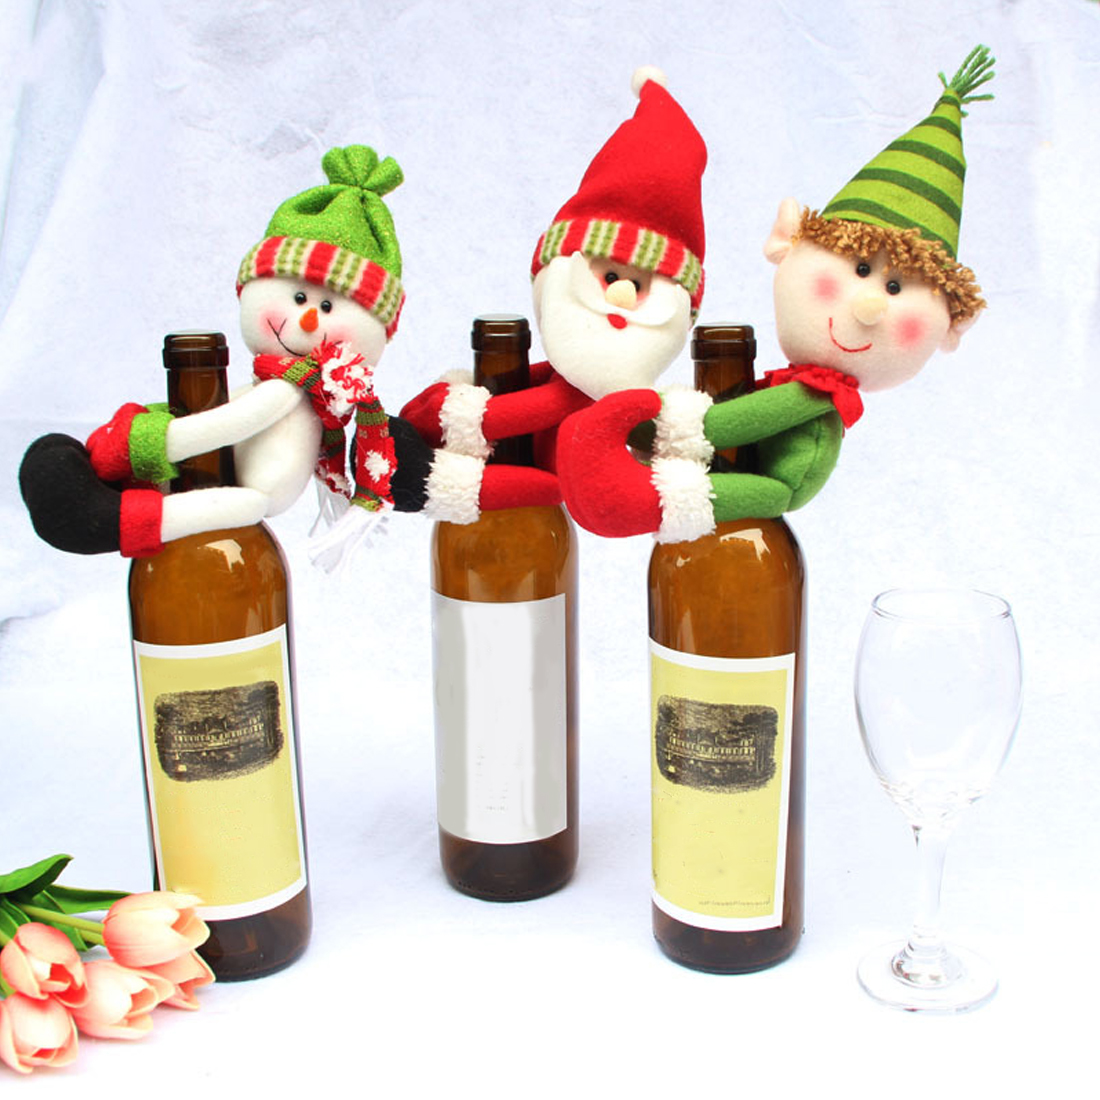 Nice Santa Claus Wine Bottle Cover Christmas Decorations For Home Snowman Bottle Pendant Sets Xmas Dinner Table Decor